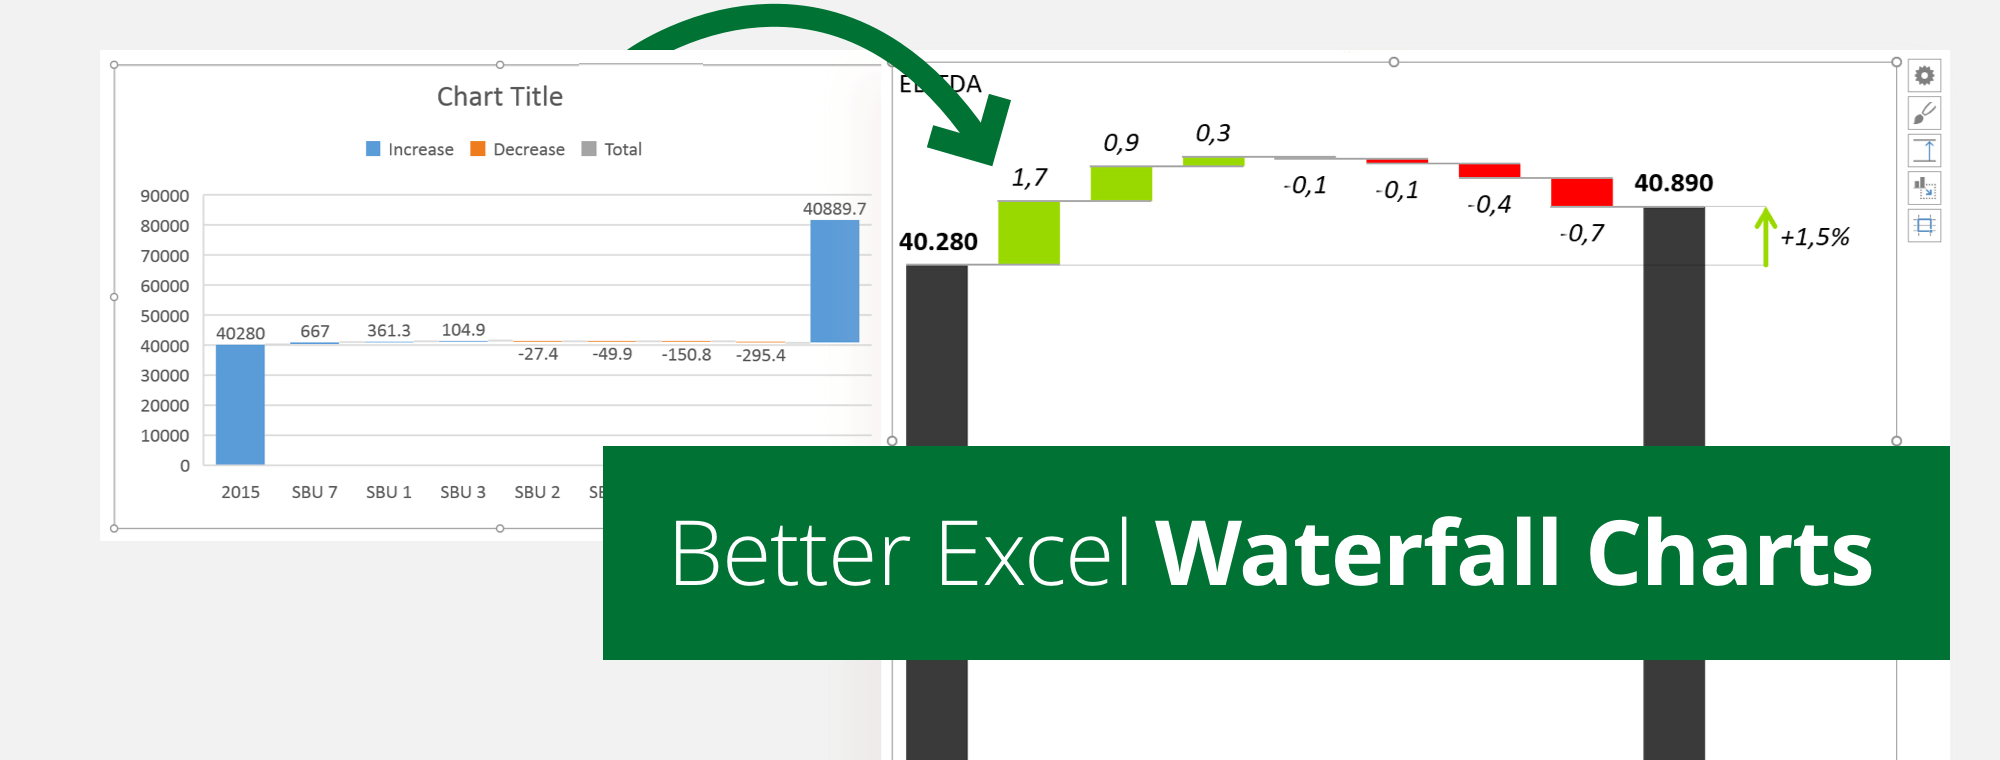 Excel Waterfall Chart How to Create One That Doesn't Suck